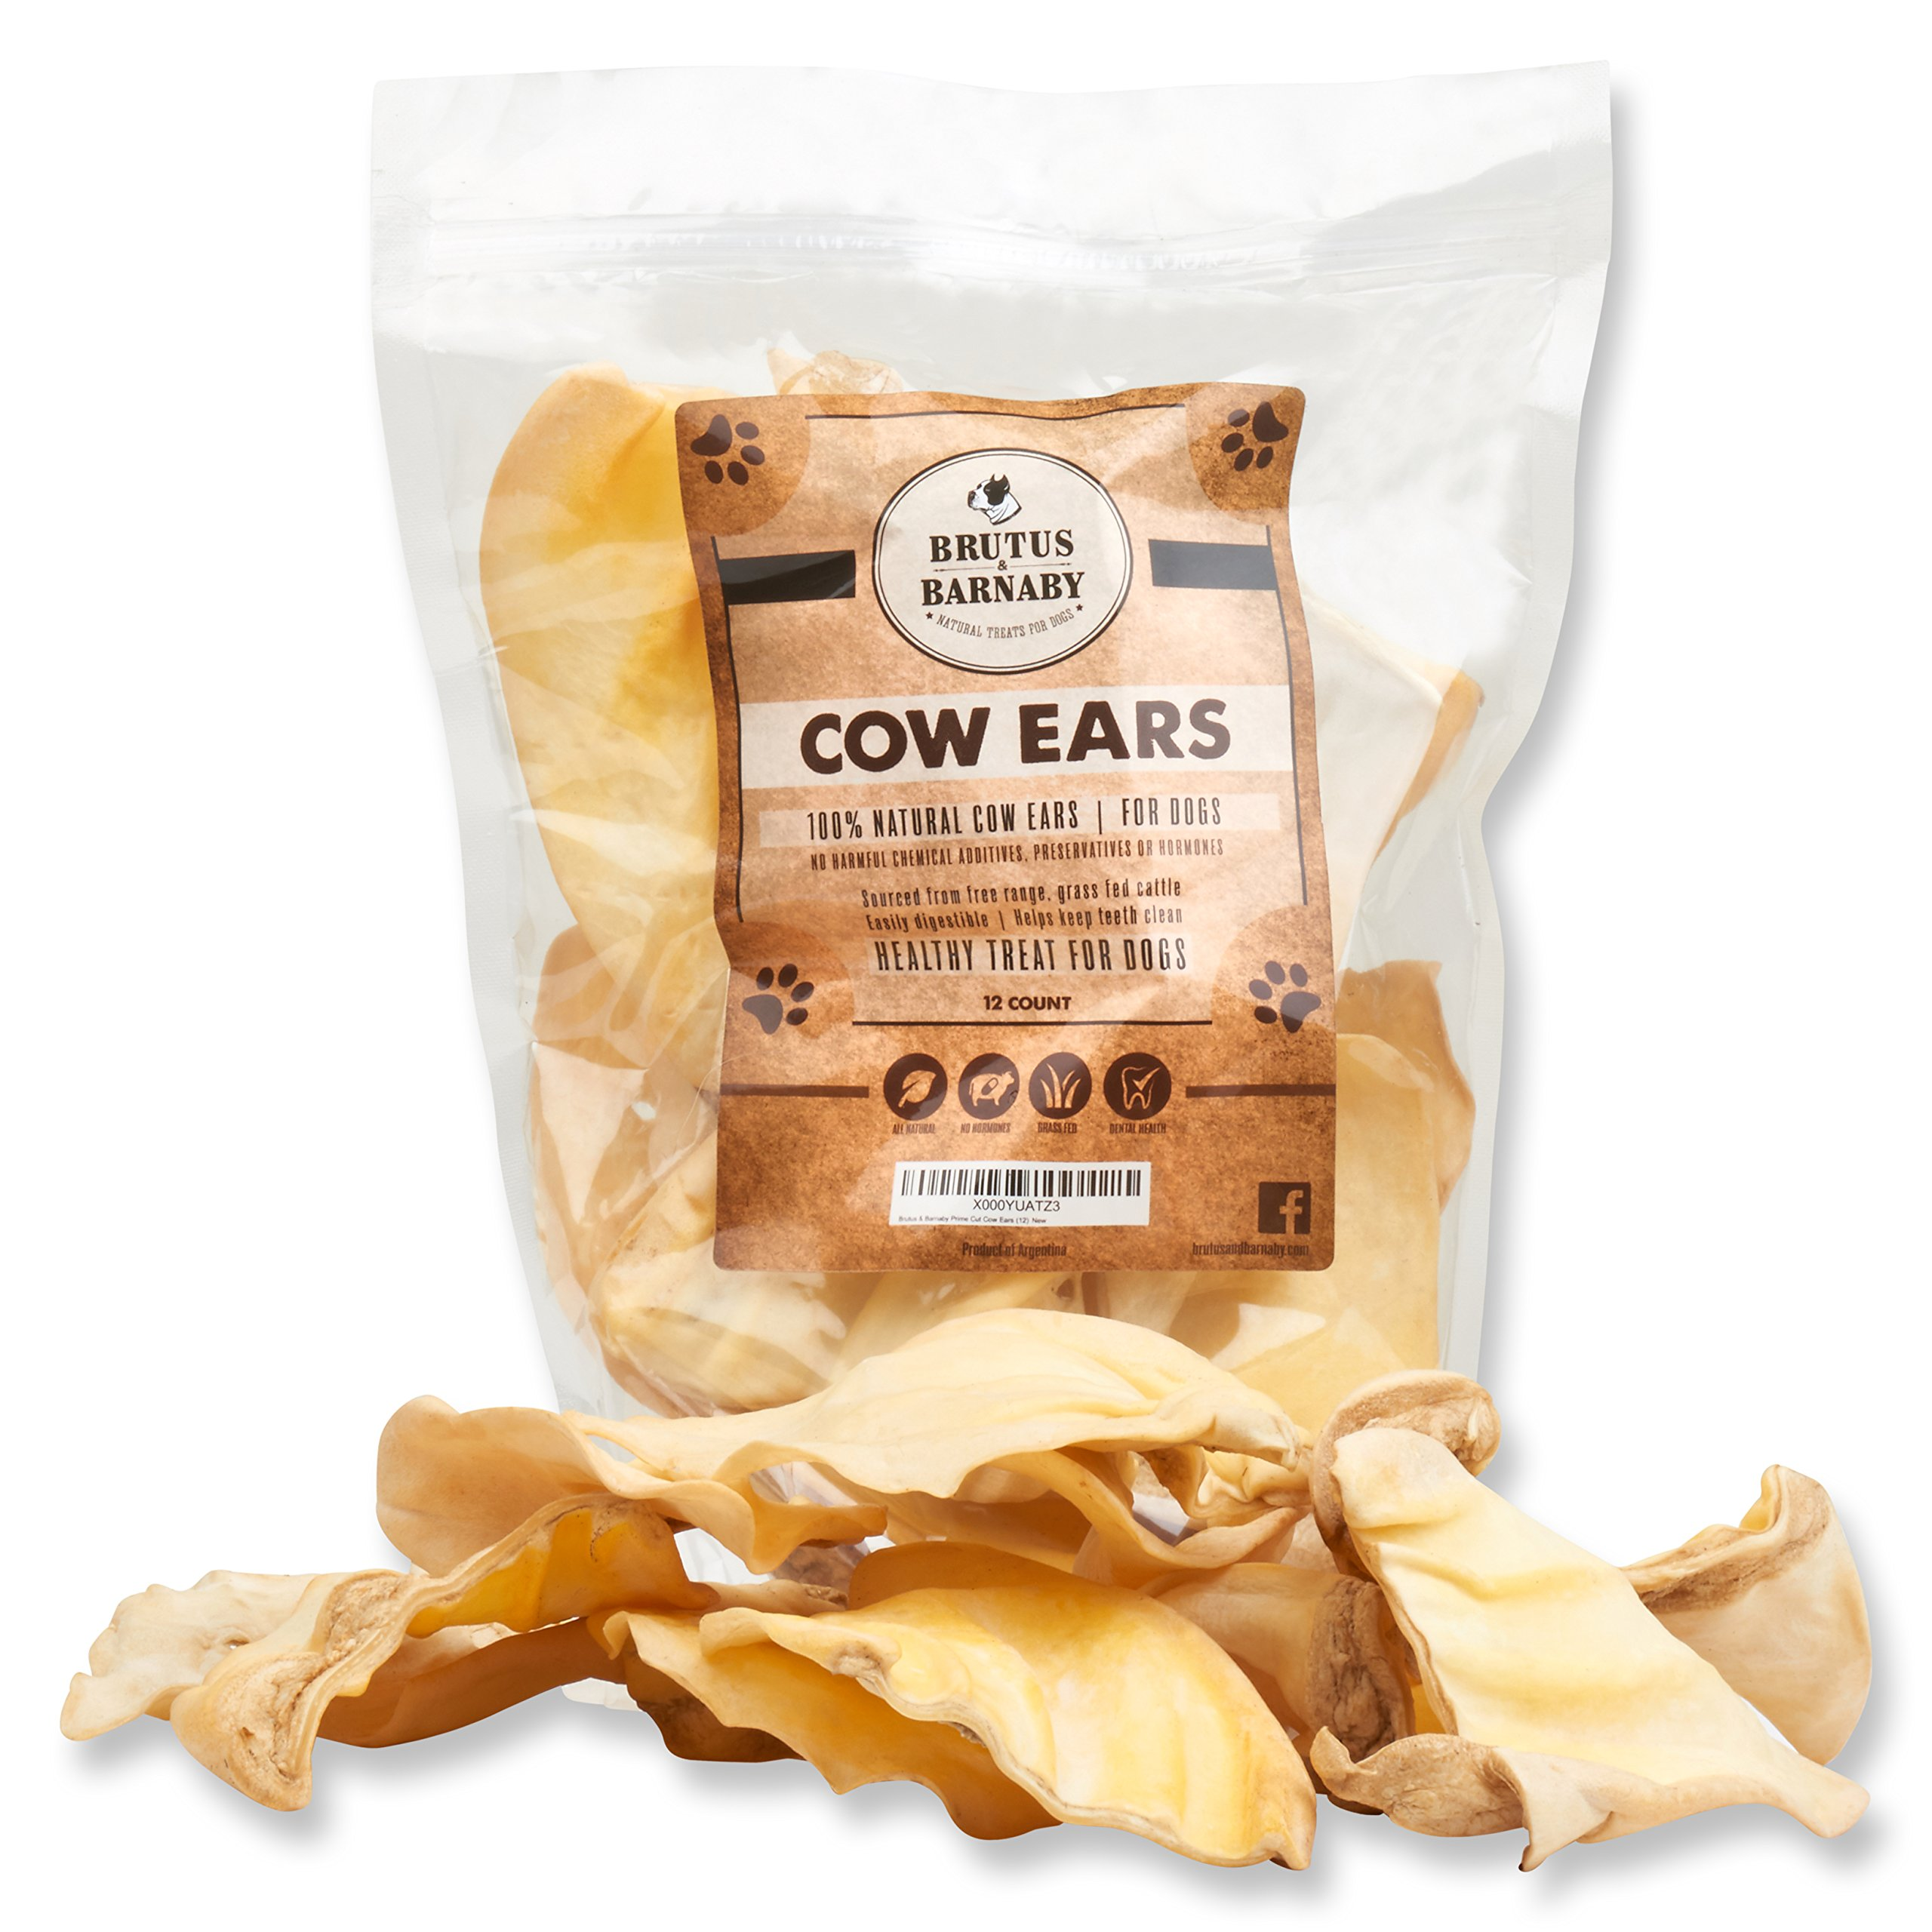 All Natural, Whole Cow Ears for Dogs by Brutus & Barnaby, Harvested from Free Range, No Hormone's Added, Grass Fed Cattle, USDA/FDA Approved